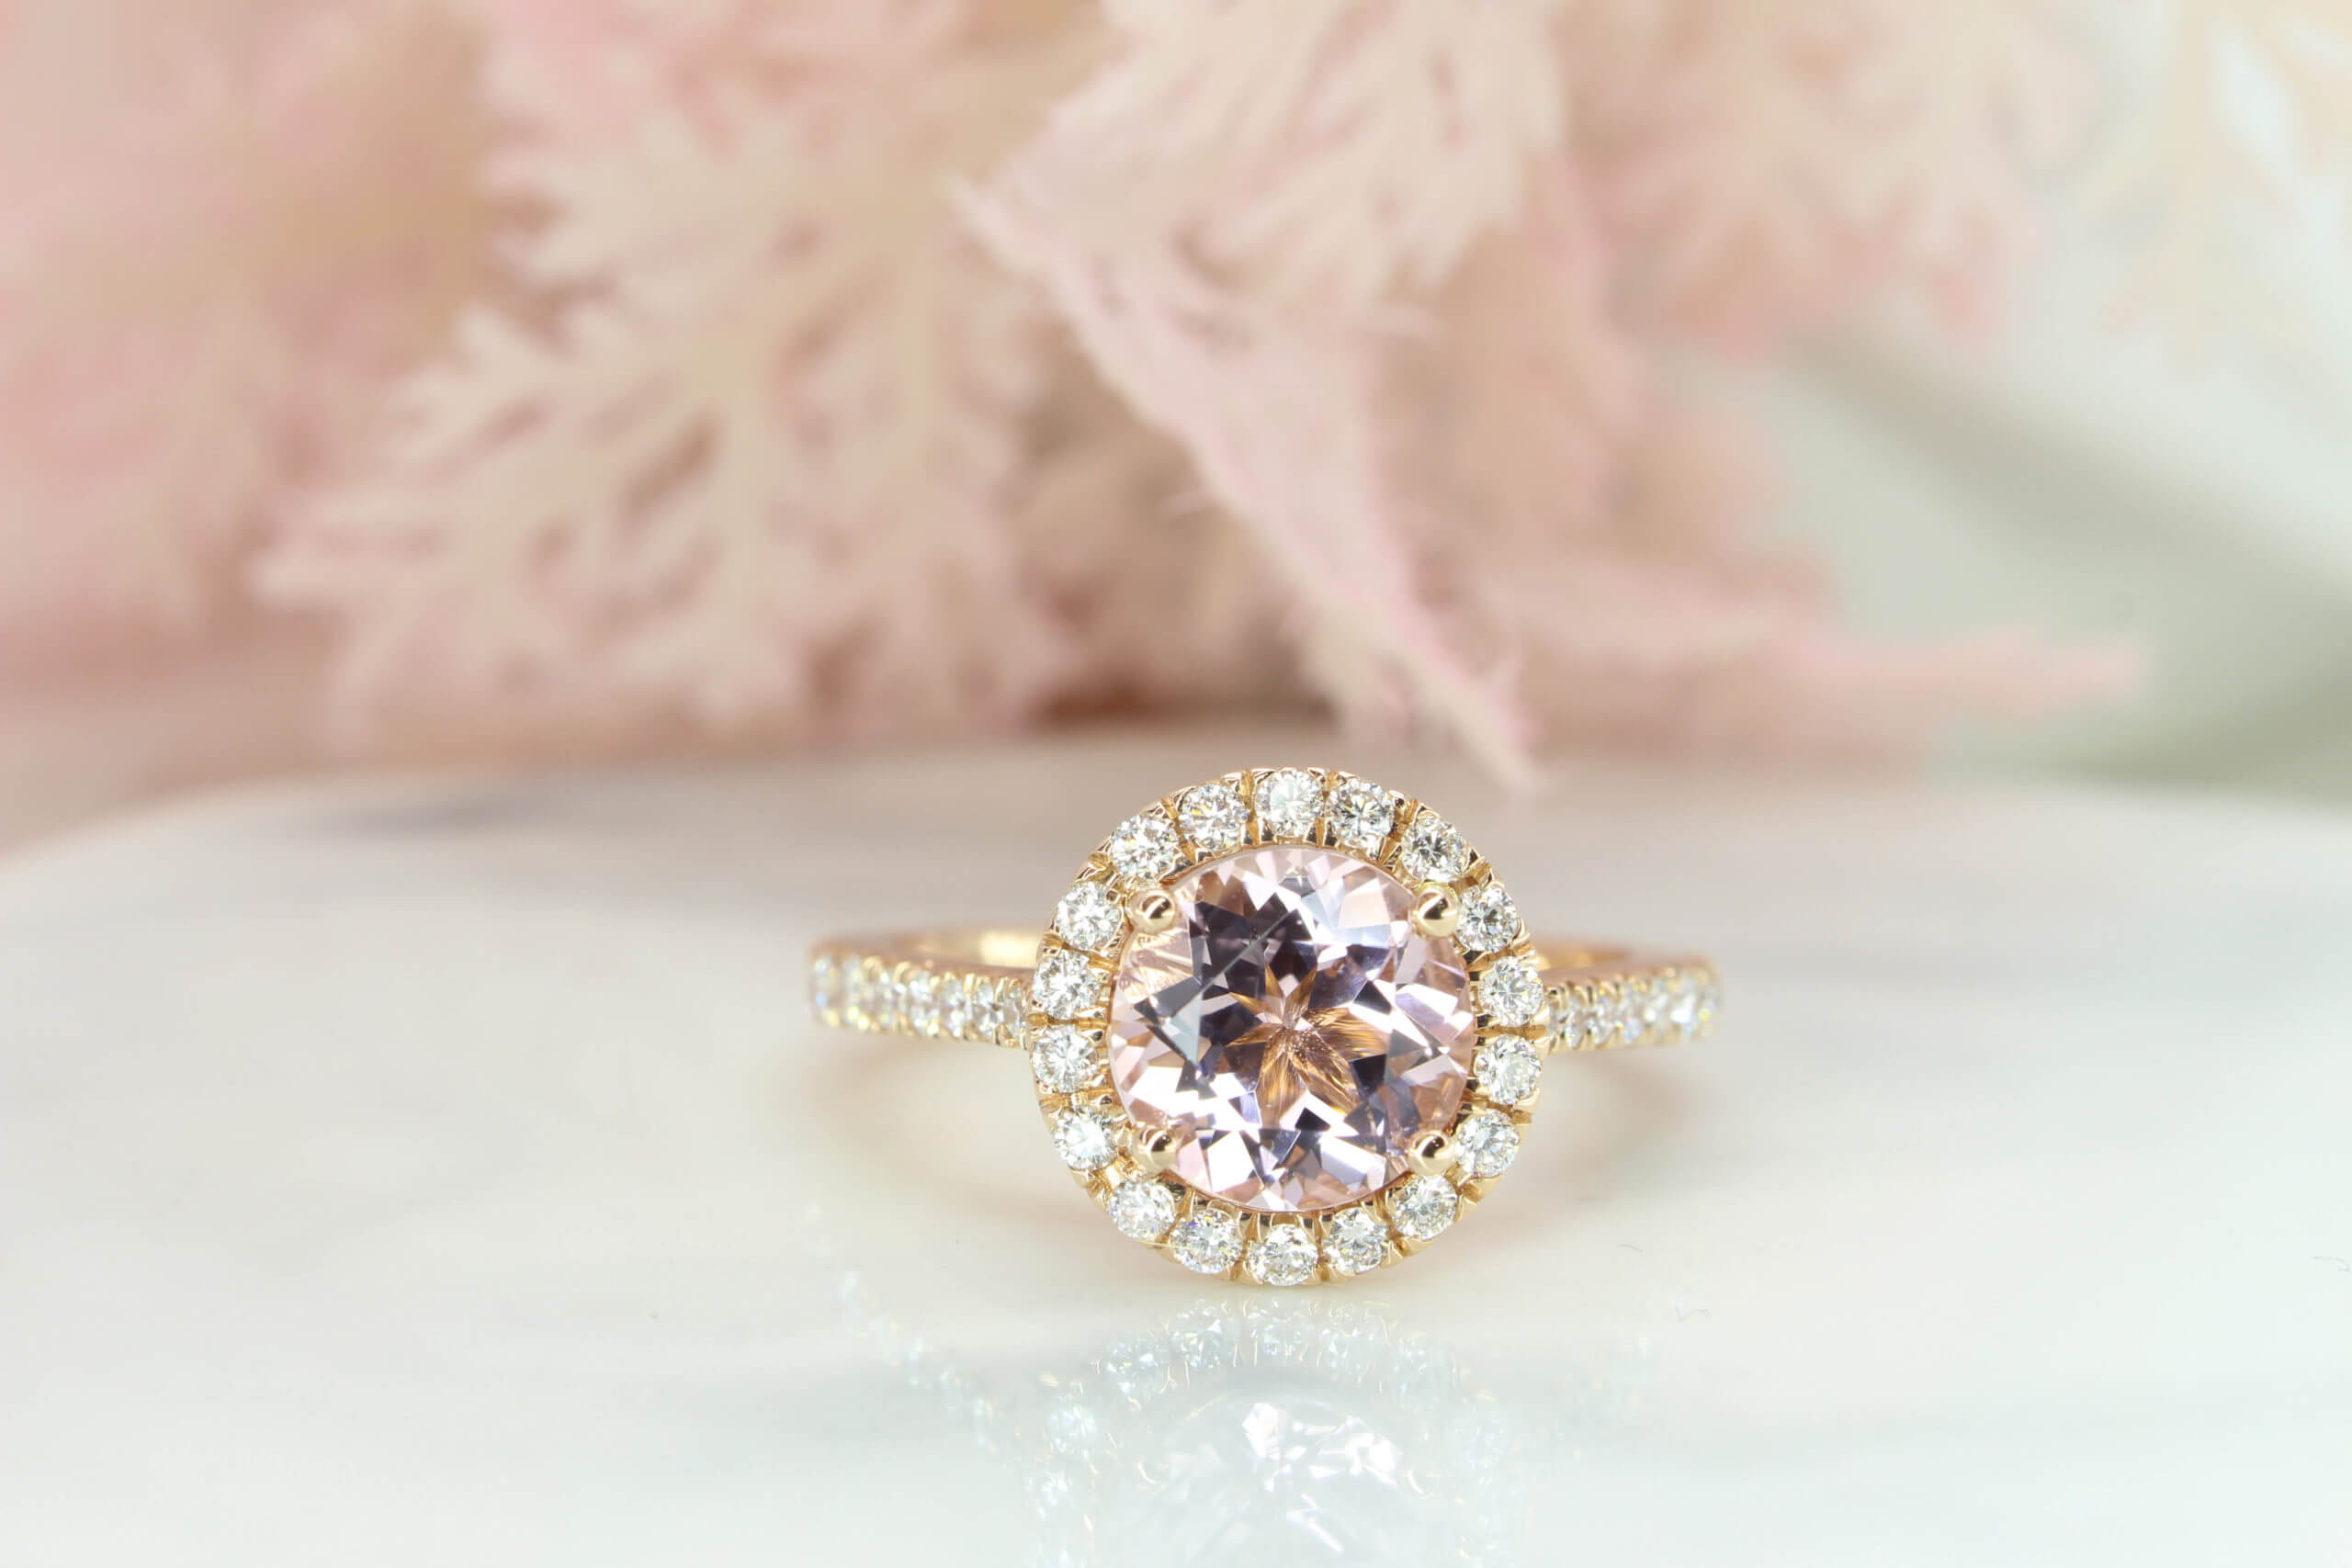 Morganite Diamond Halo Ring Customised for Wedding Proposal, fine morganite gemstone cut in round shape and designed with a halo of round diamond surrounding the morganite. Unique sweet baby pink morganite gemstone crafted in rose gold for a perfect wedding proposal | Local Singapore Jeweller in customised Engagement ring for Wedding Proposal